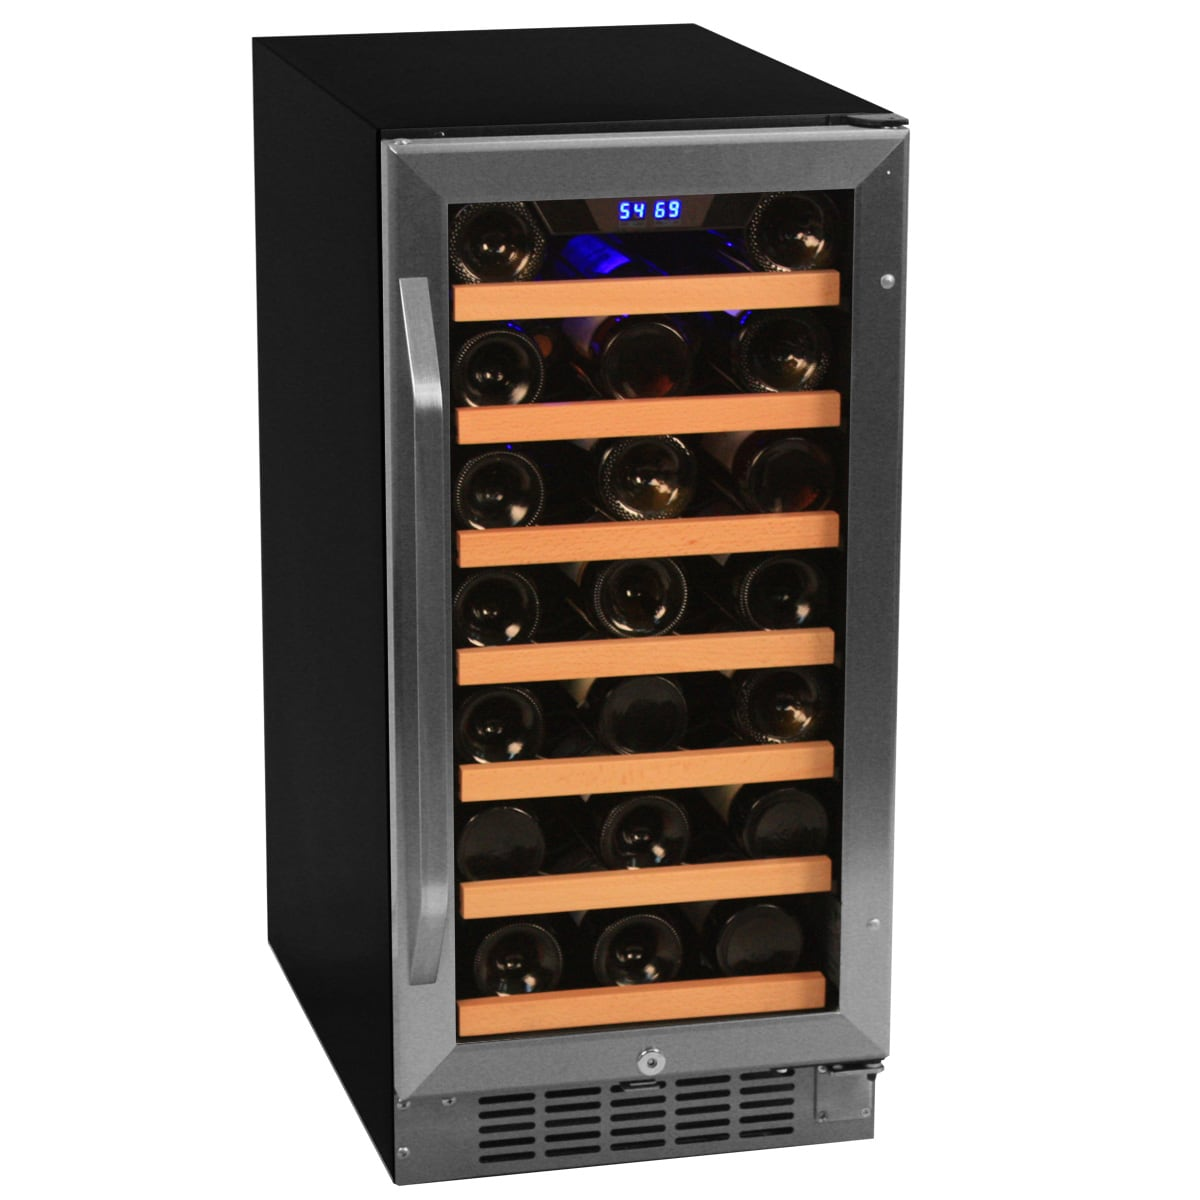 Overstock.com EdgeStar 30 Bottle Built-In Wine Cooler - Stainless Steel/Black at Sears.com